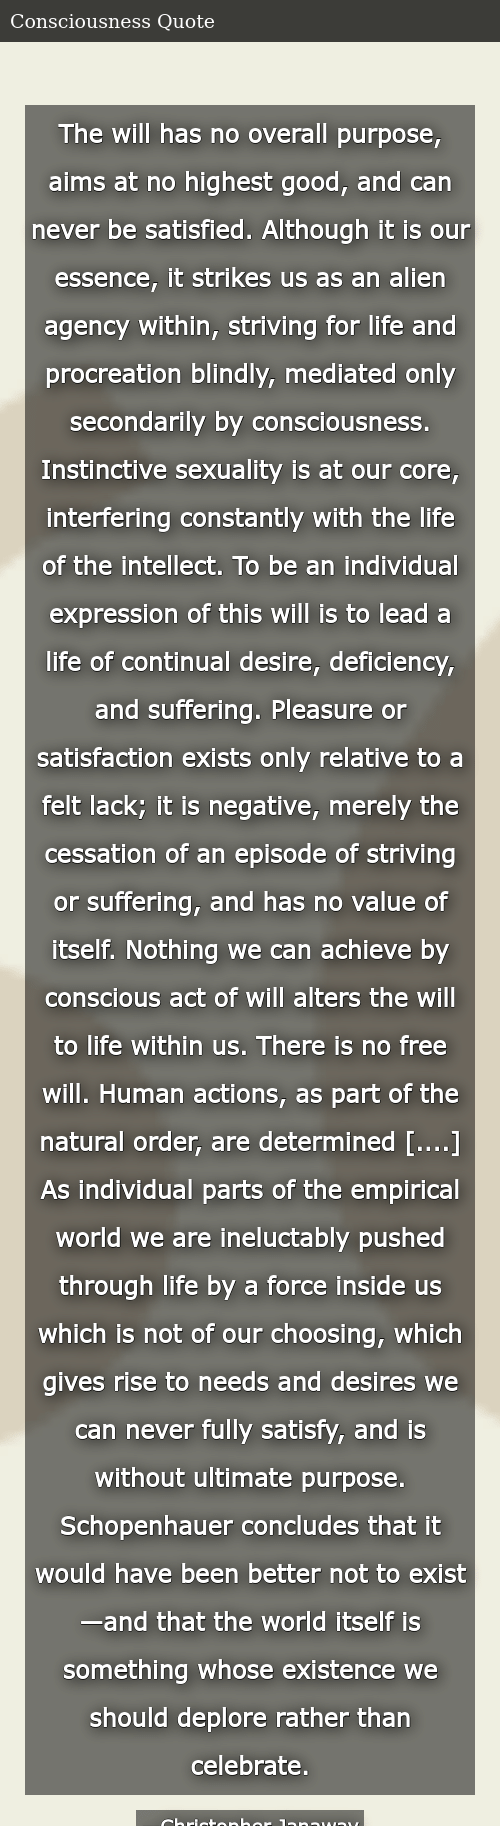 the will has no overall purpose aims at no highest